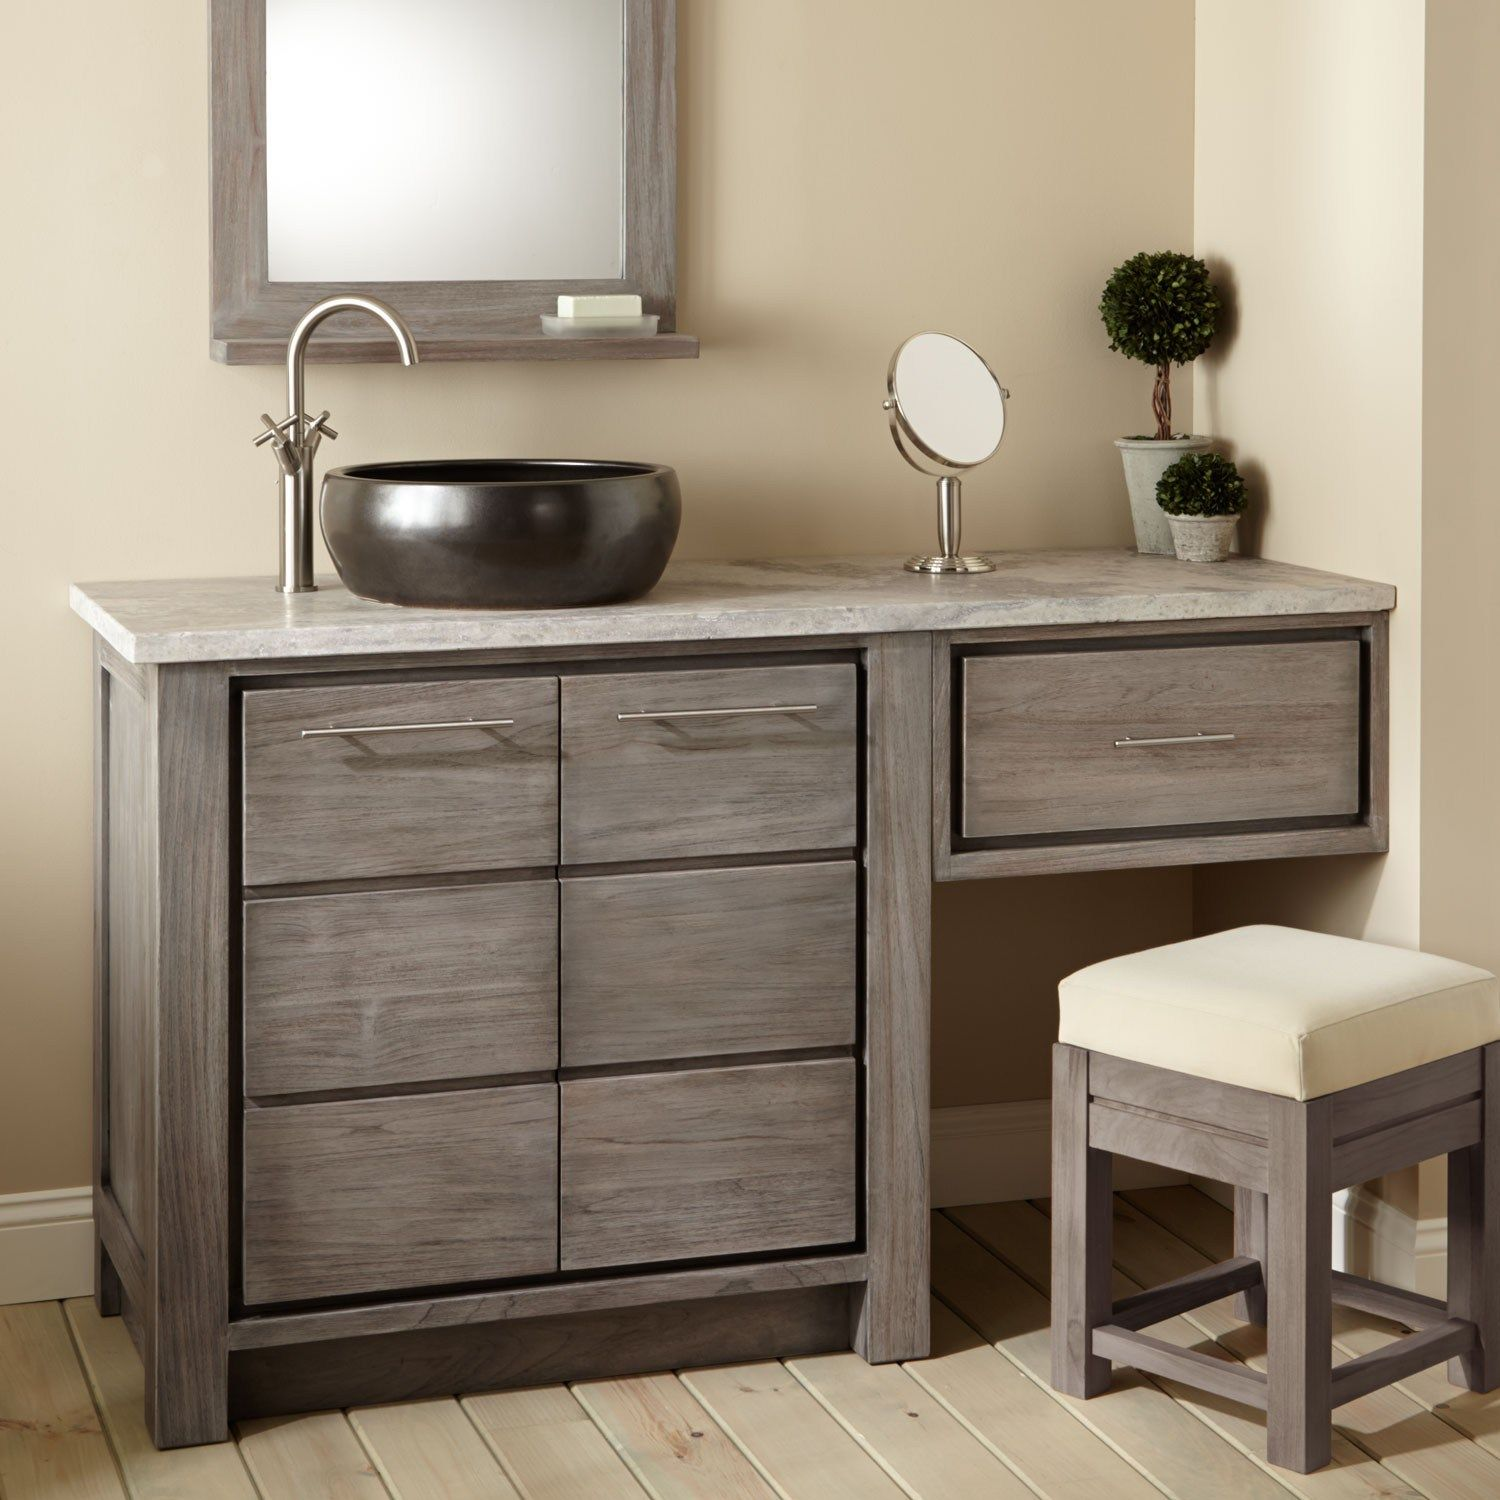 Black Wooden Vanity With White Bowl Sink Also Make Up Table On The Withinu2026